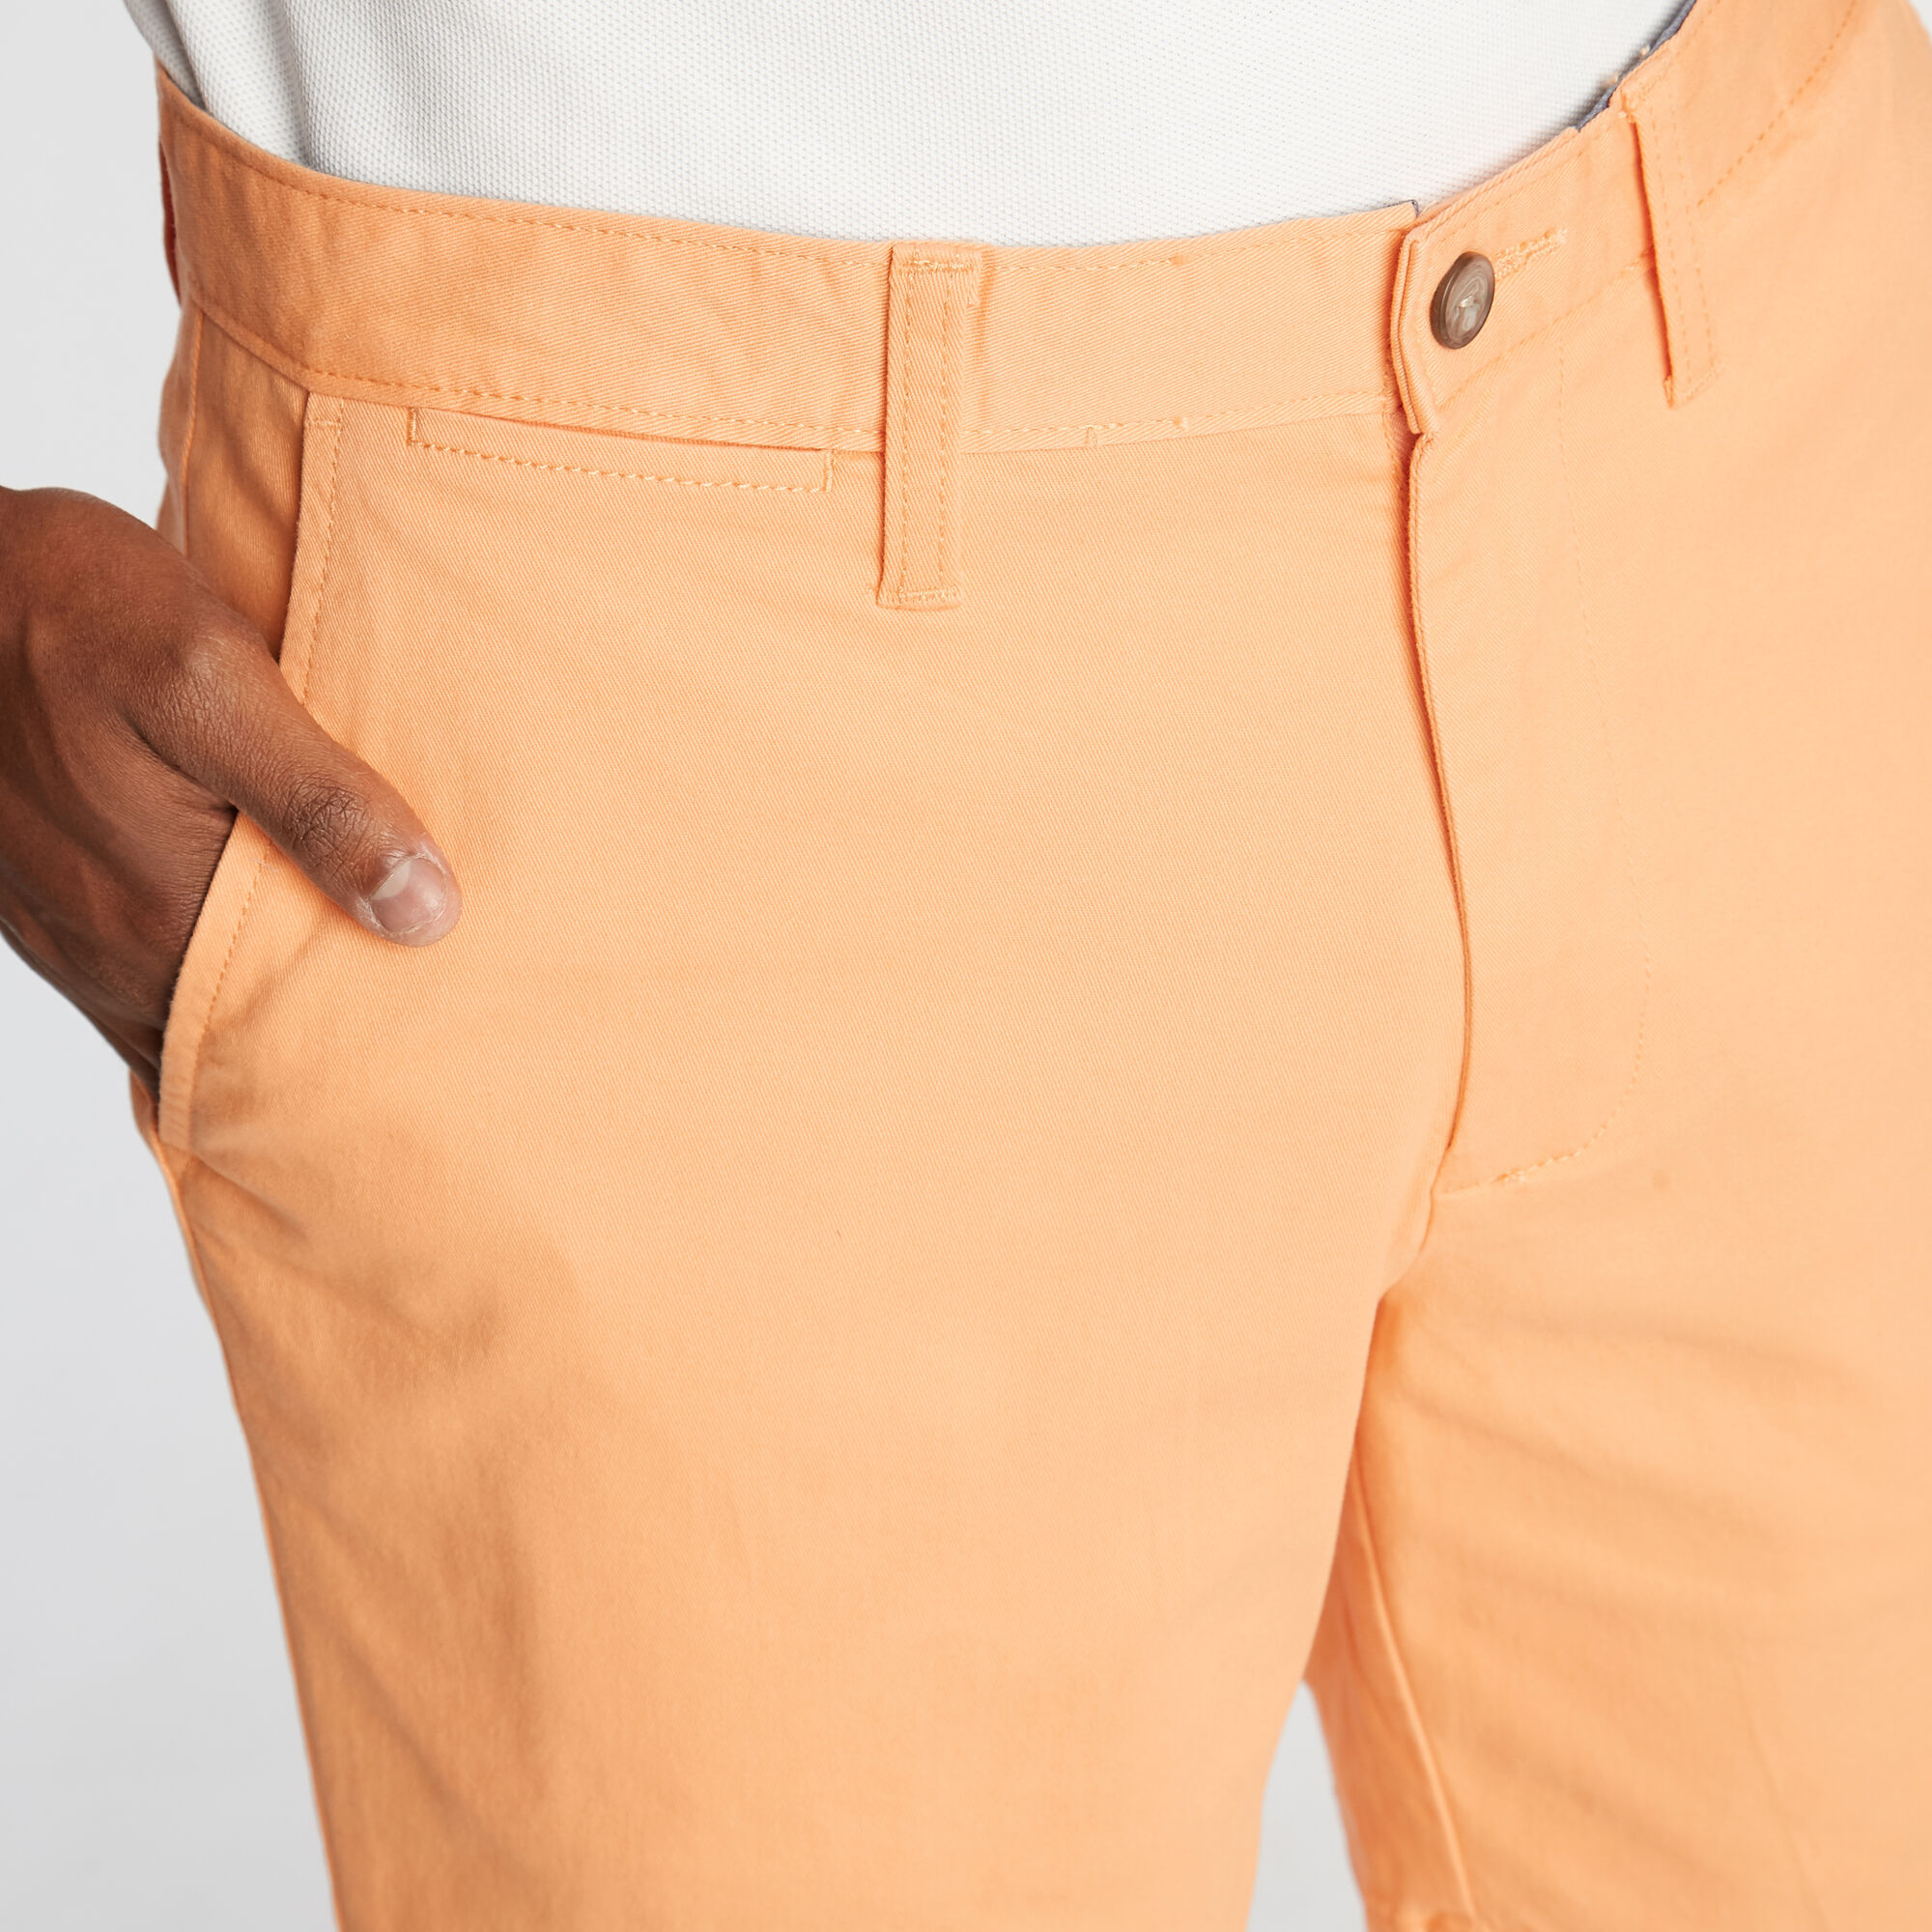 Nautica-Mens-8-5-034-Classic-Fit-Deck-Short-With-Stretch thumbnail 24